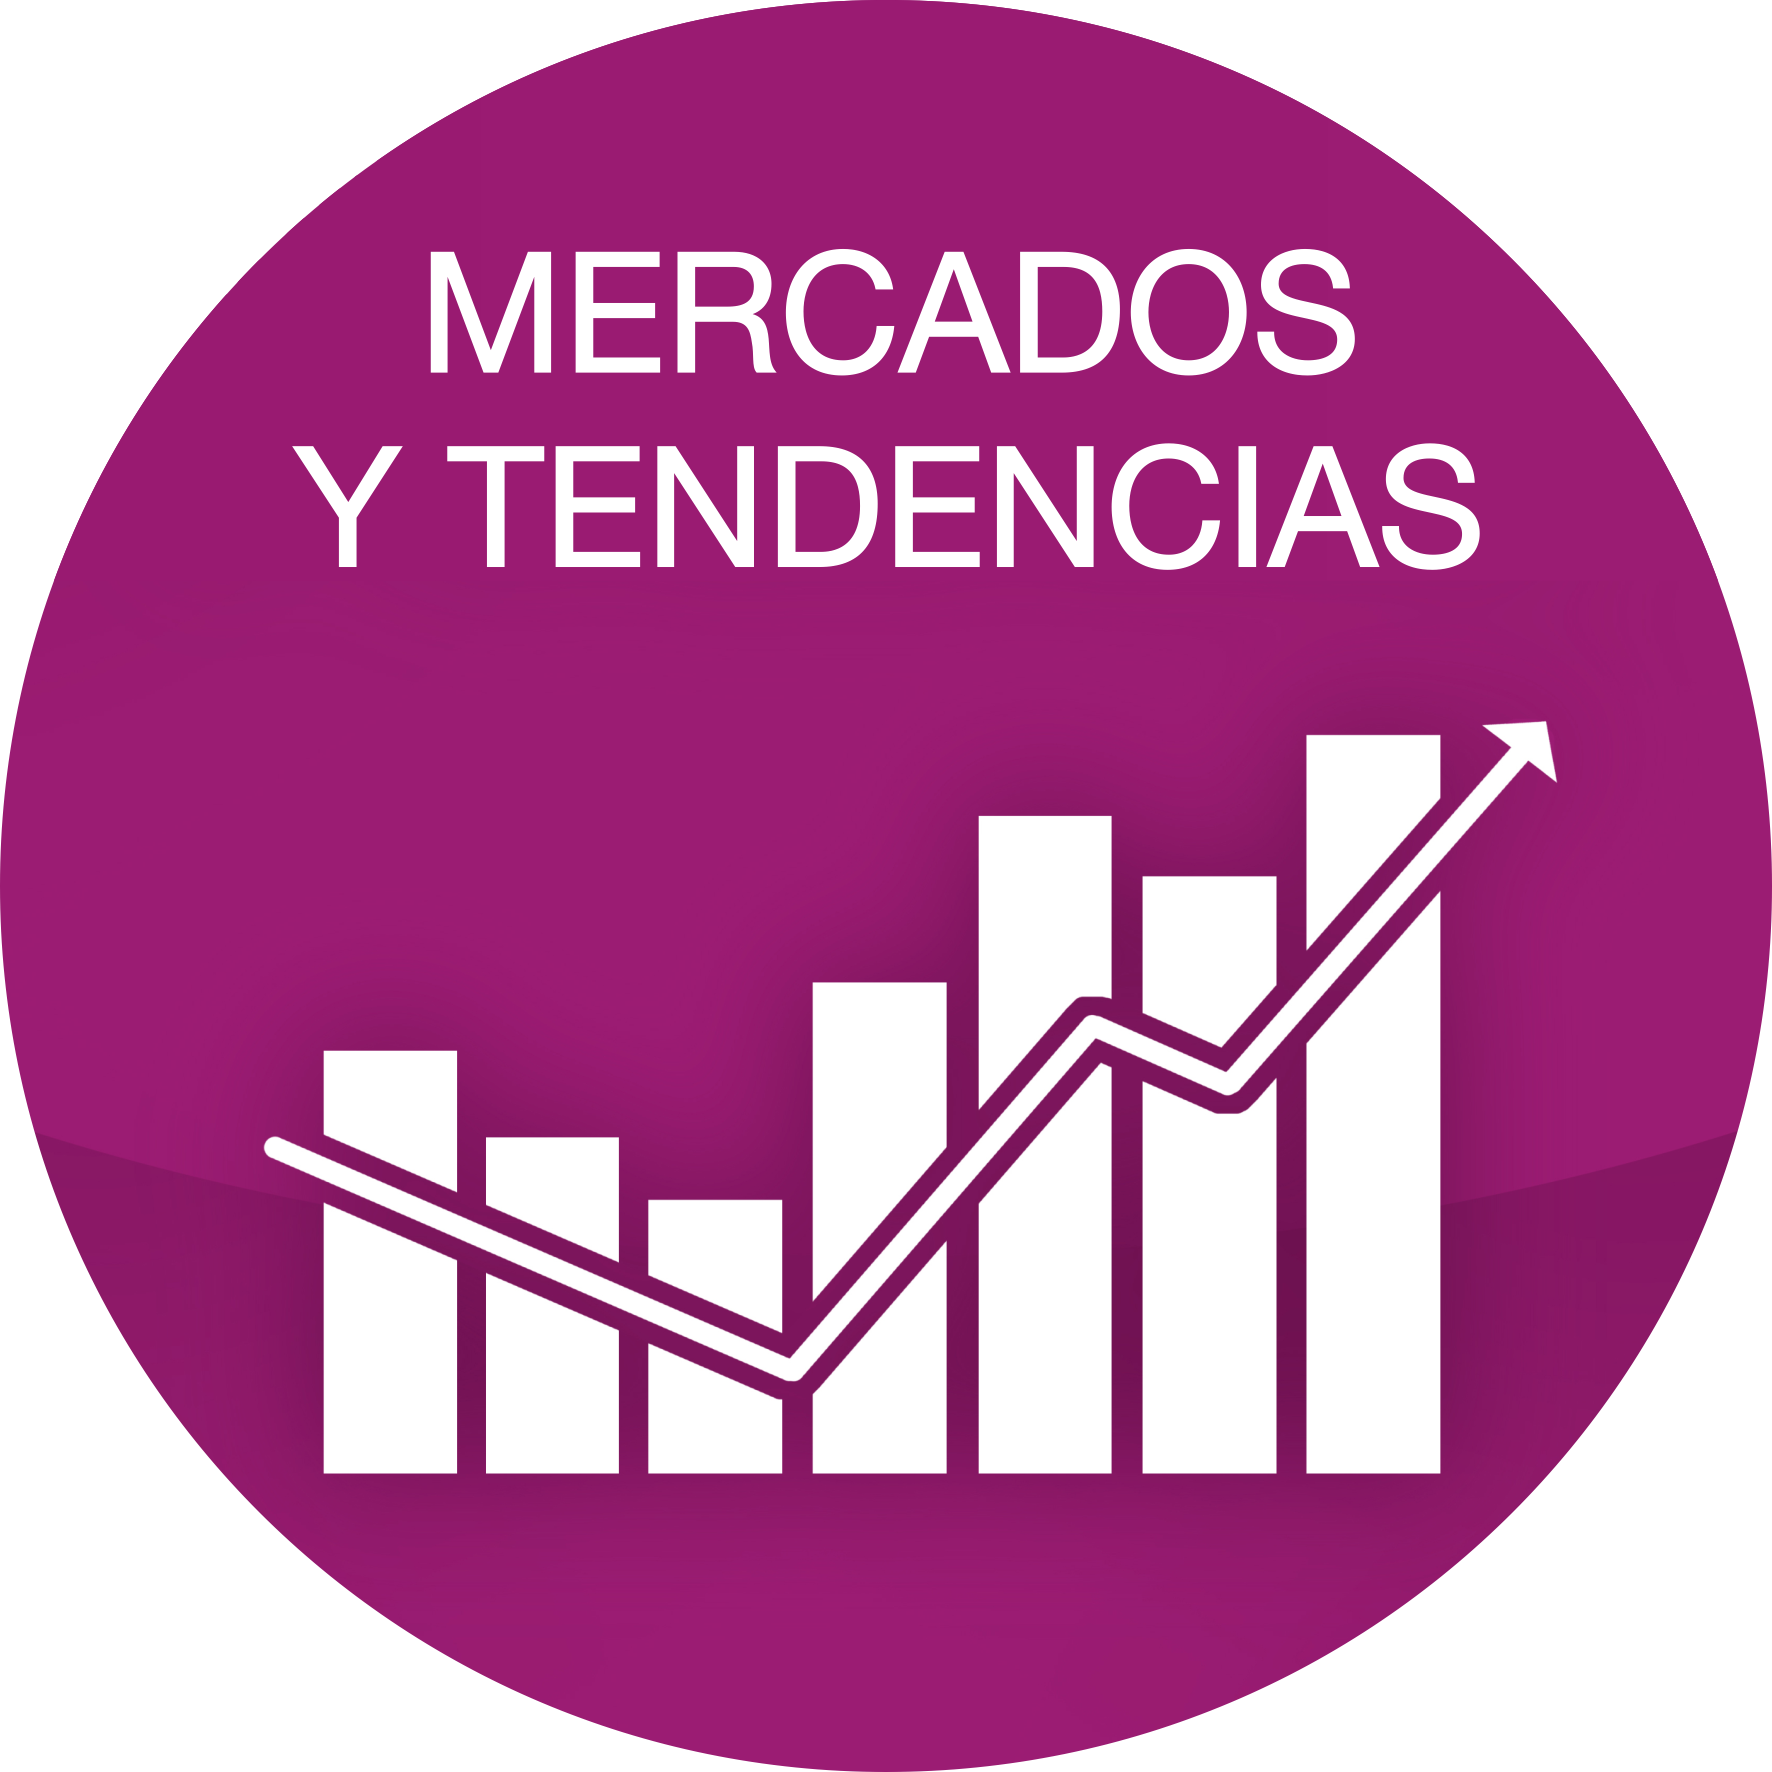 mercados y tendencias